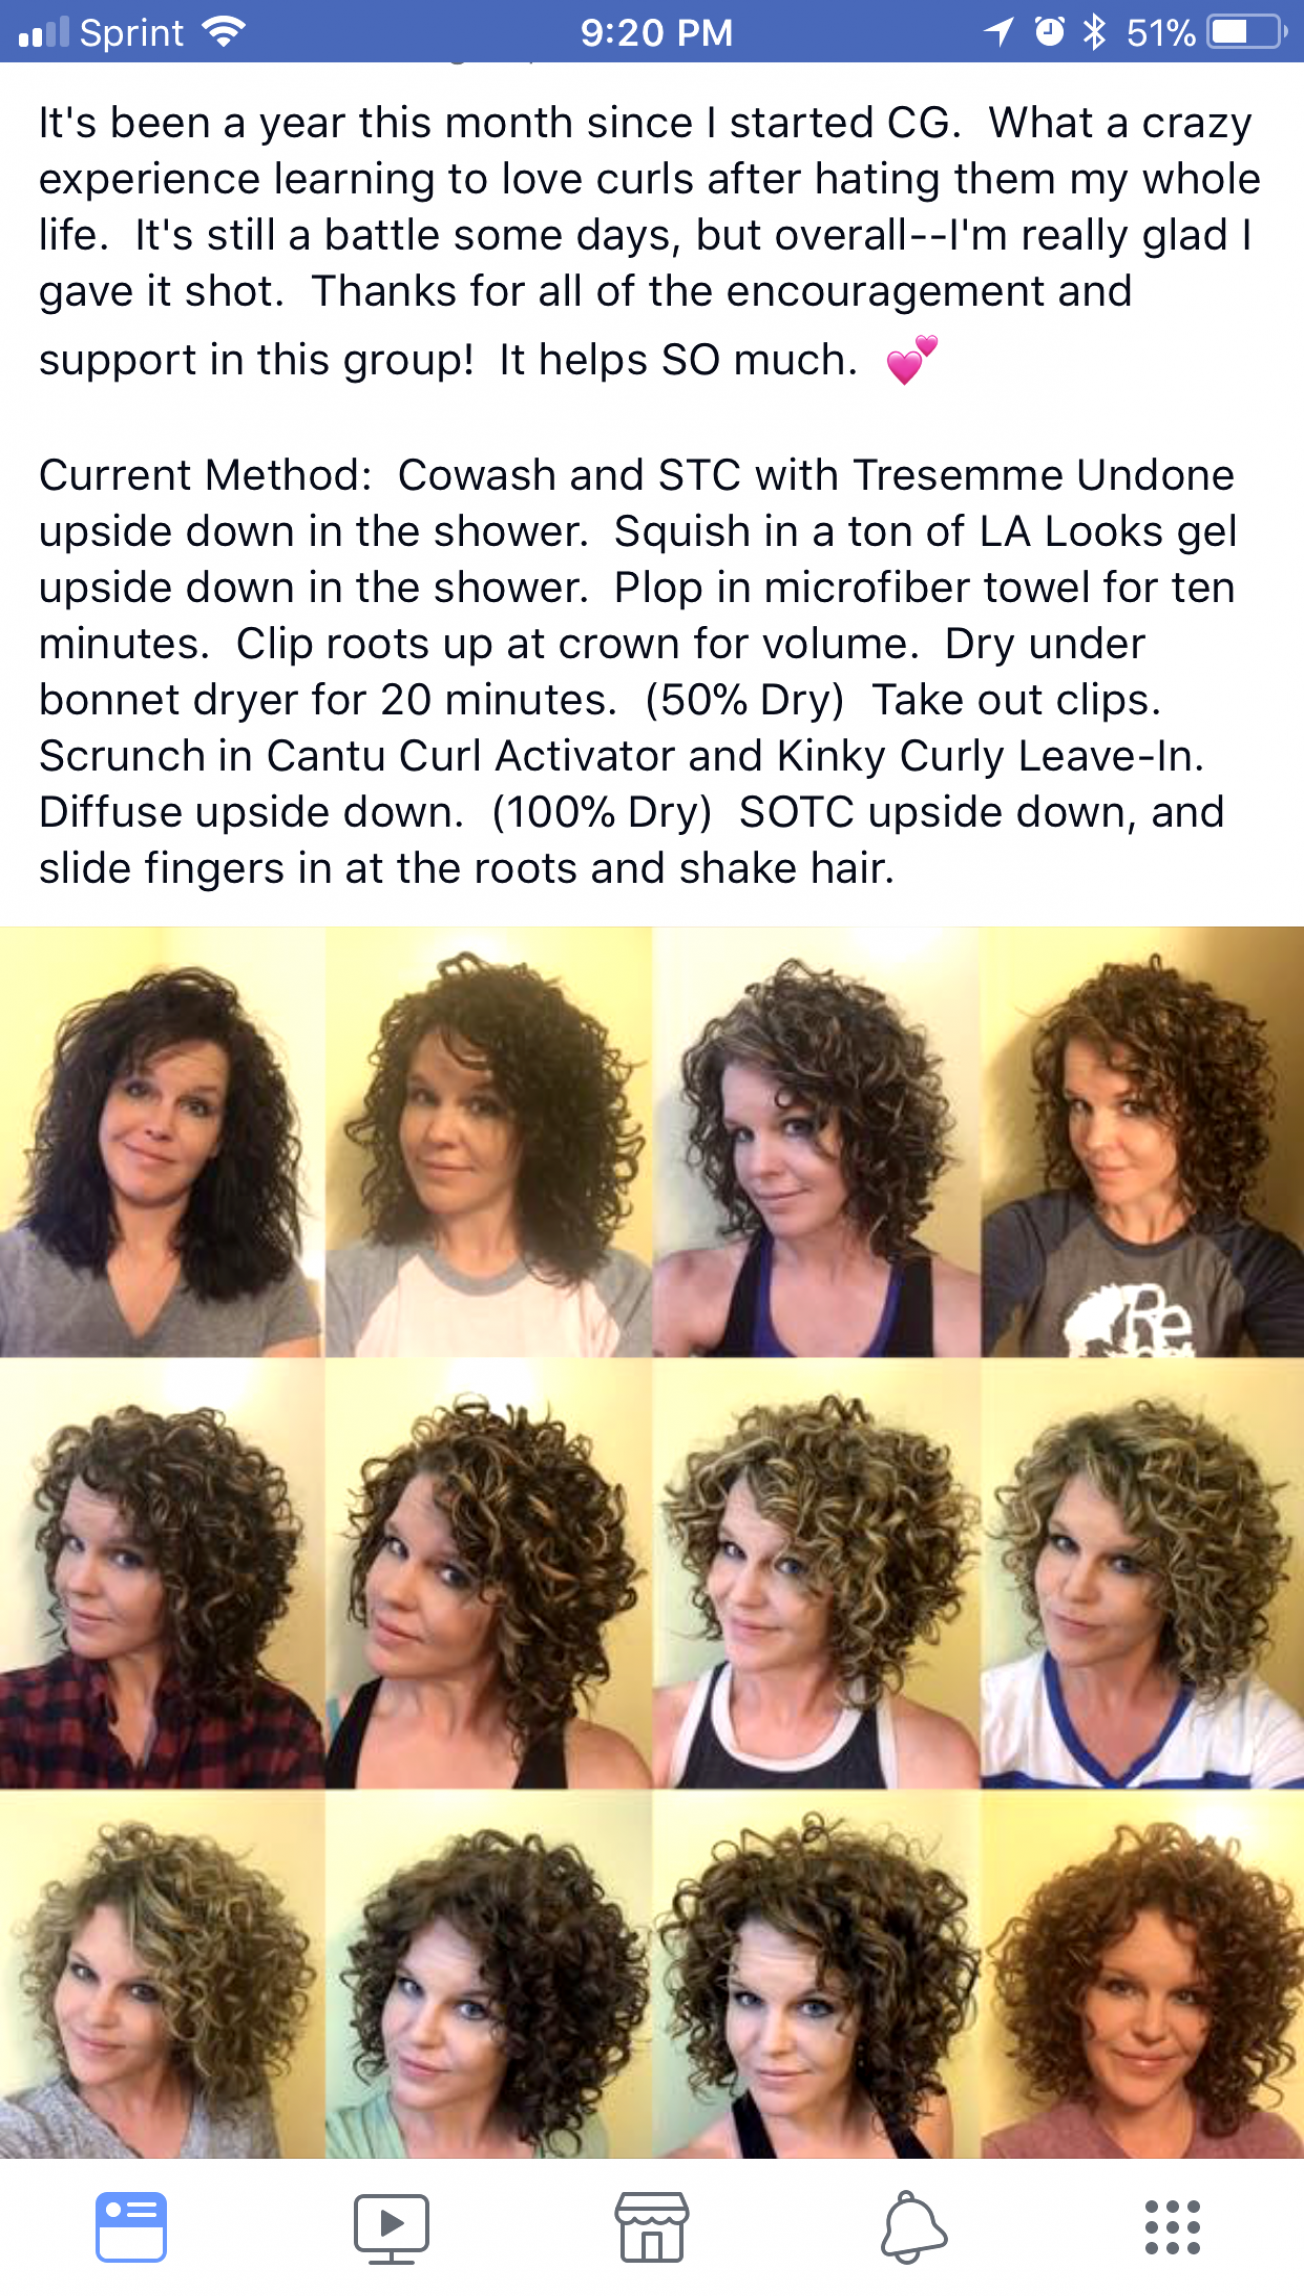 Curlygirlmethod Curlygirl Curlyhairtips Curlyhairstylesnaturally Curls Naturallycurly In 2020 Curly Hair Styles Curly Hair Styles Naturally Curly Natural Curls